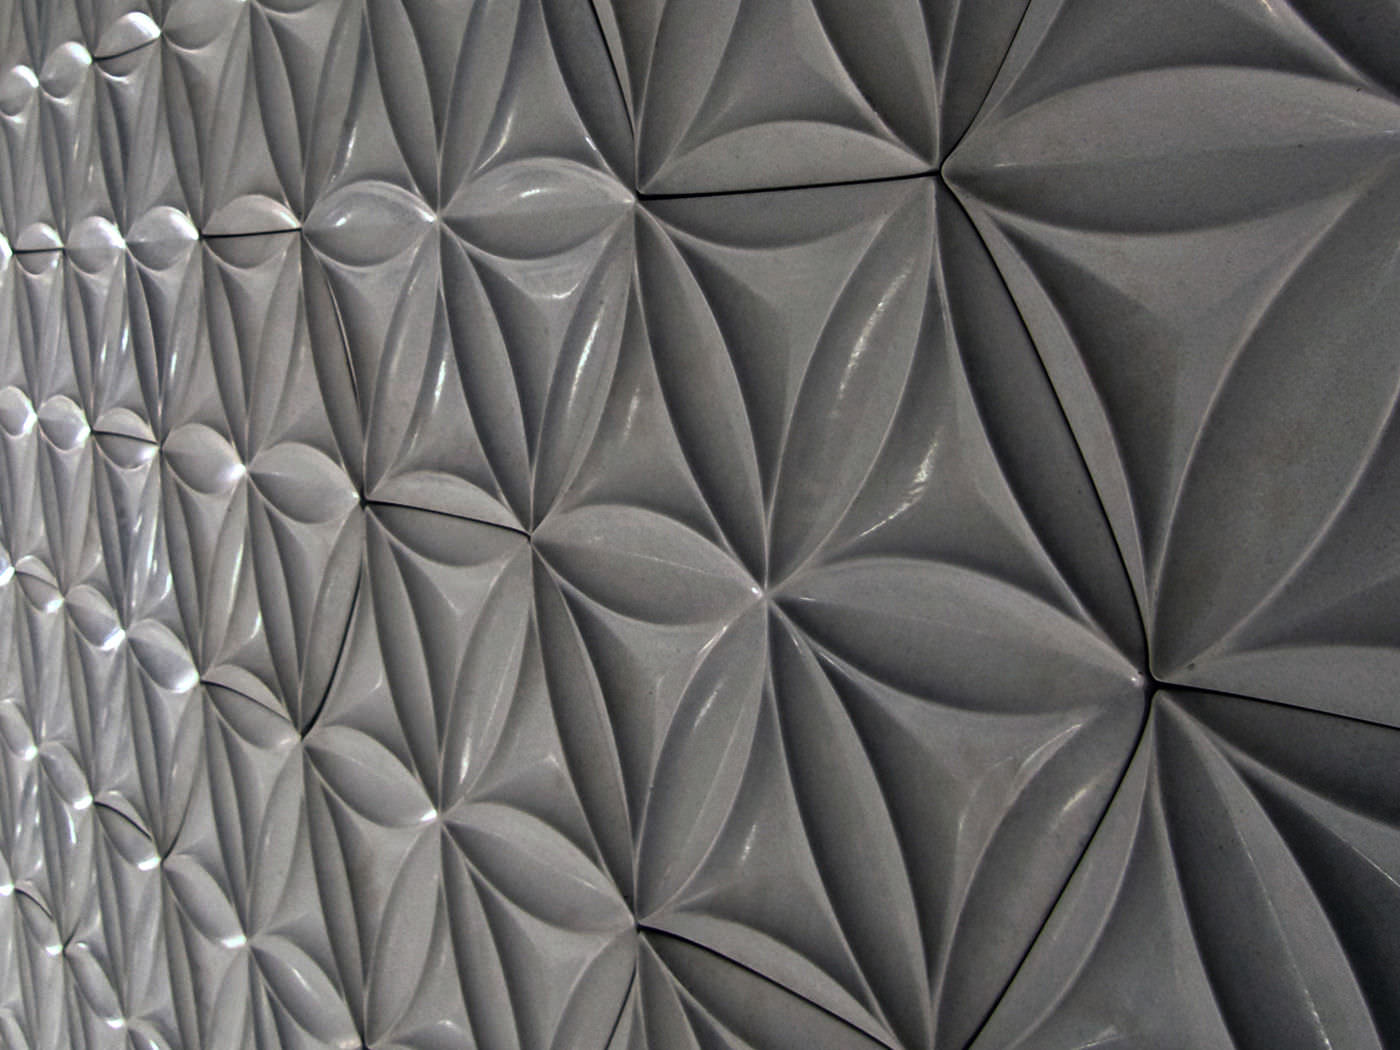 Indoor tile / wall / concrete / geometric pattern - FLORA HEX ...